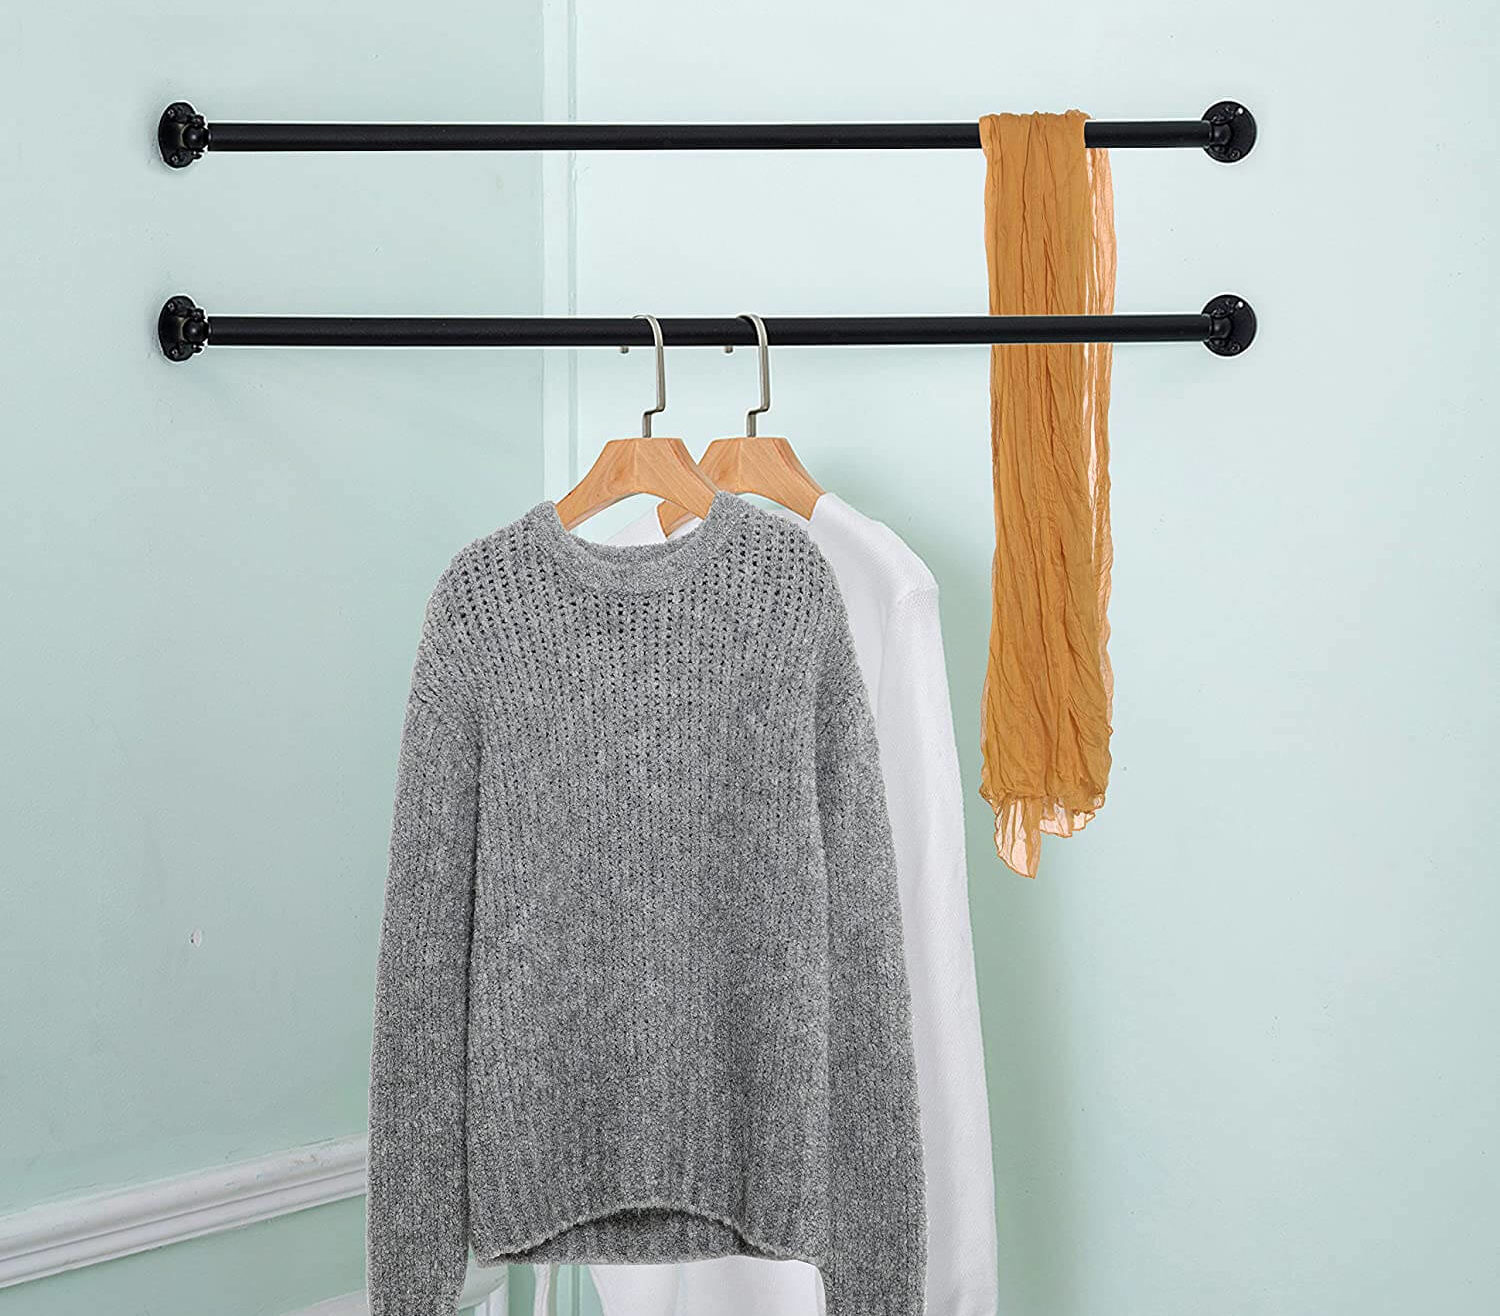 Corner hanging garment bar